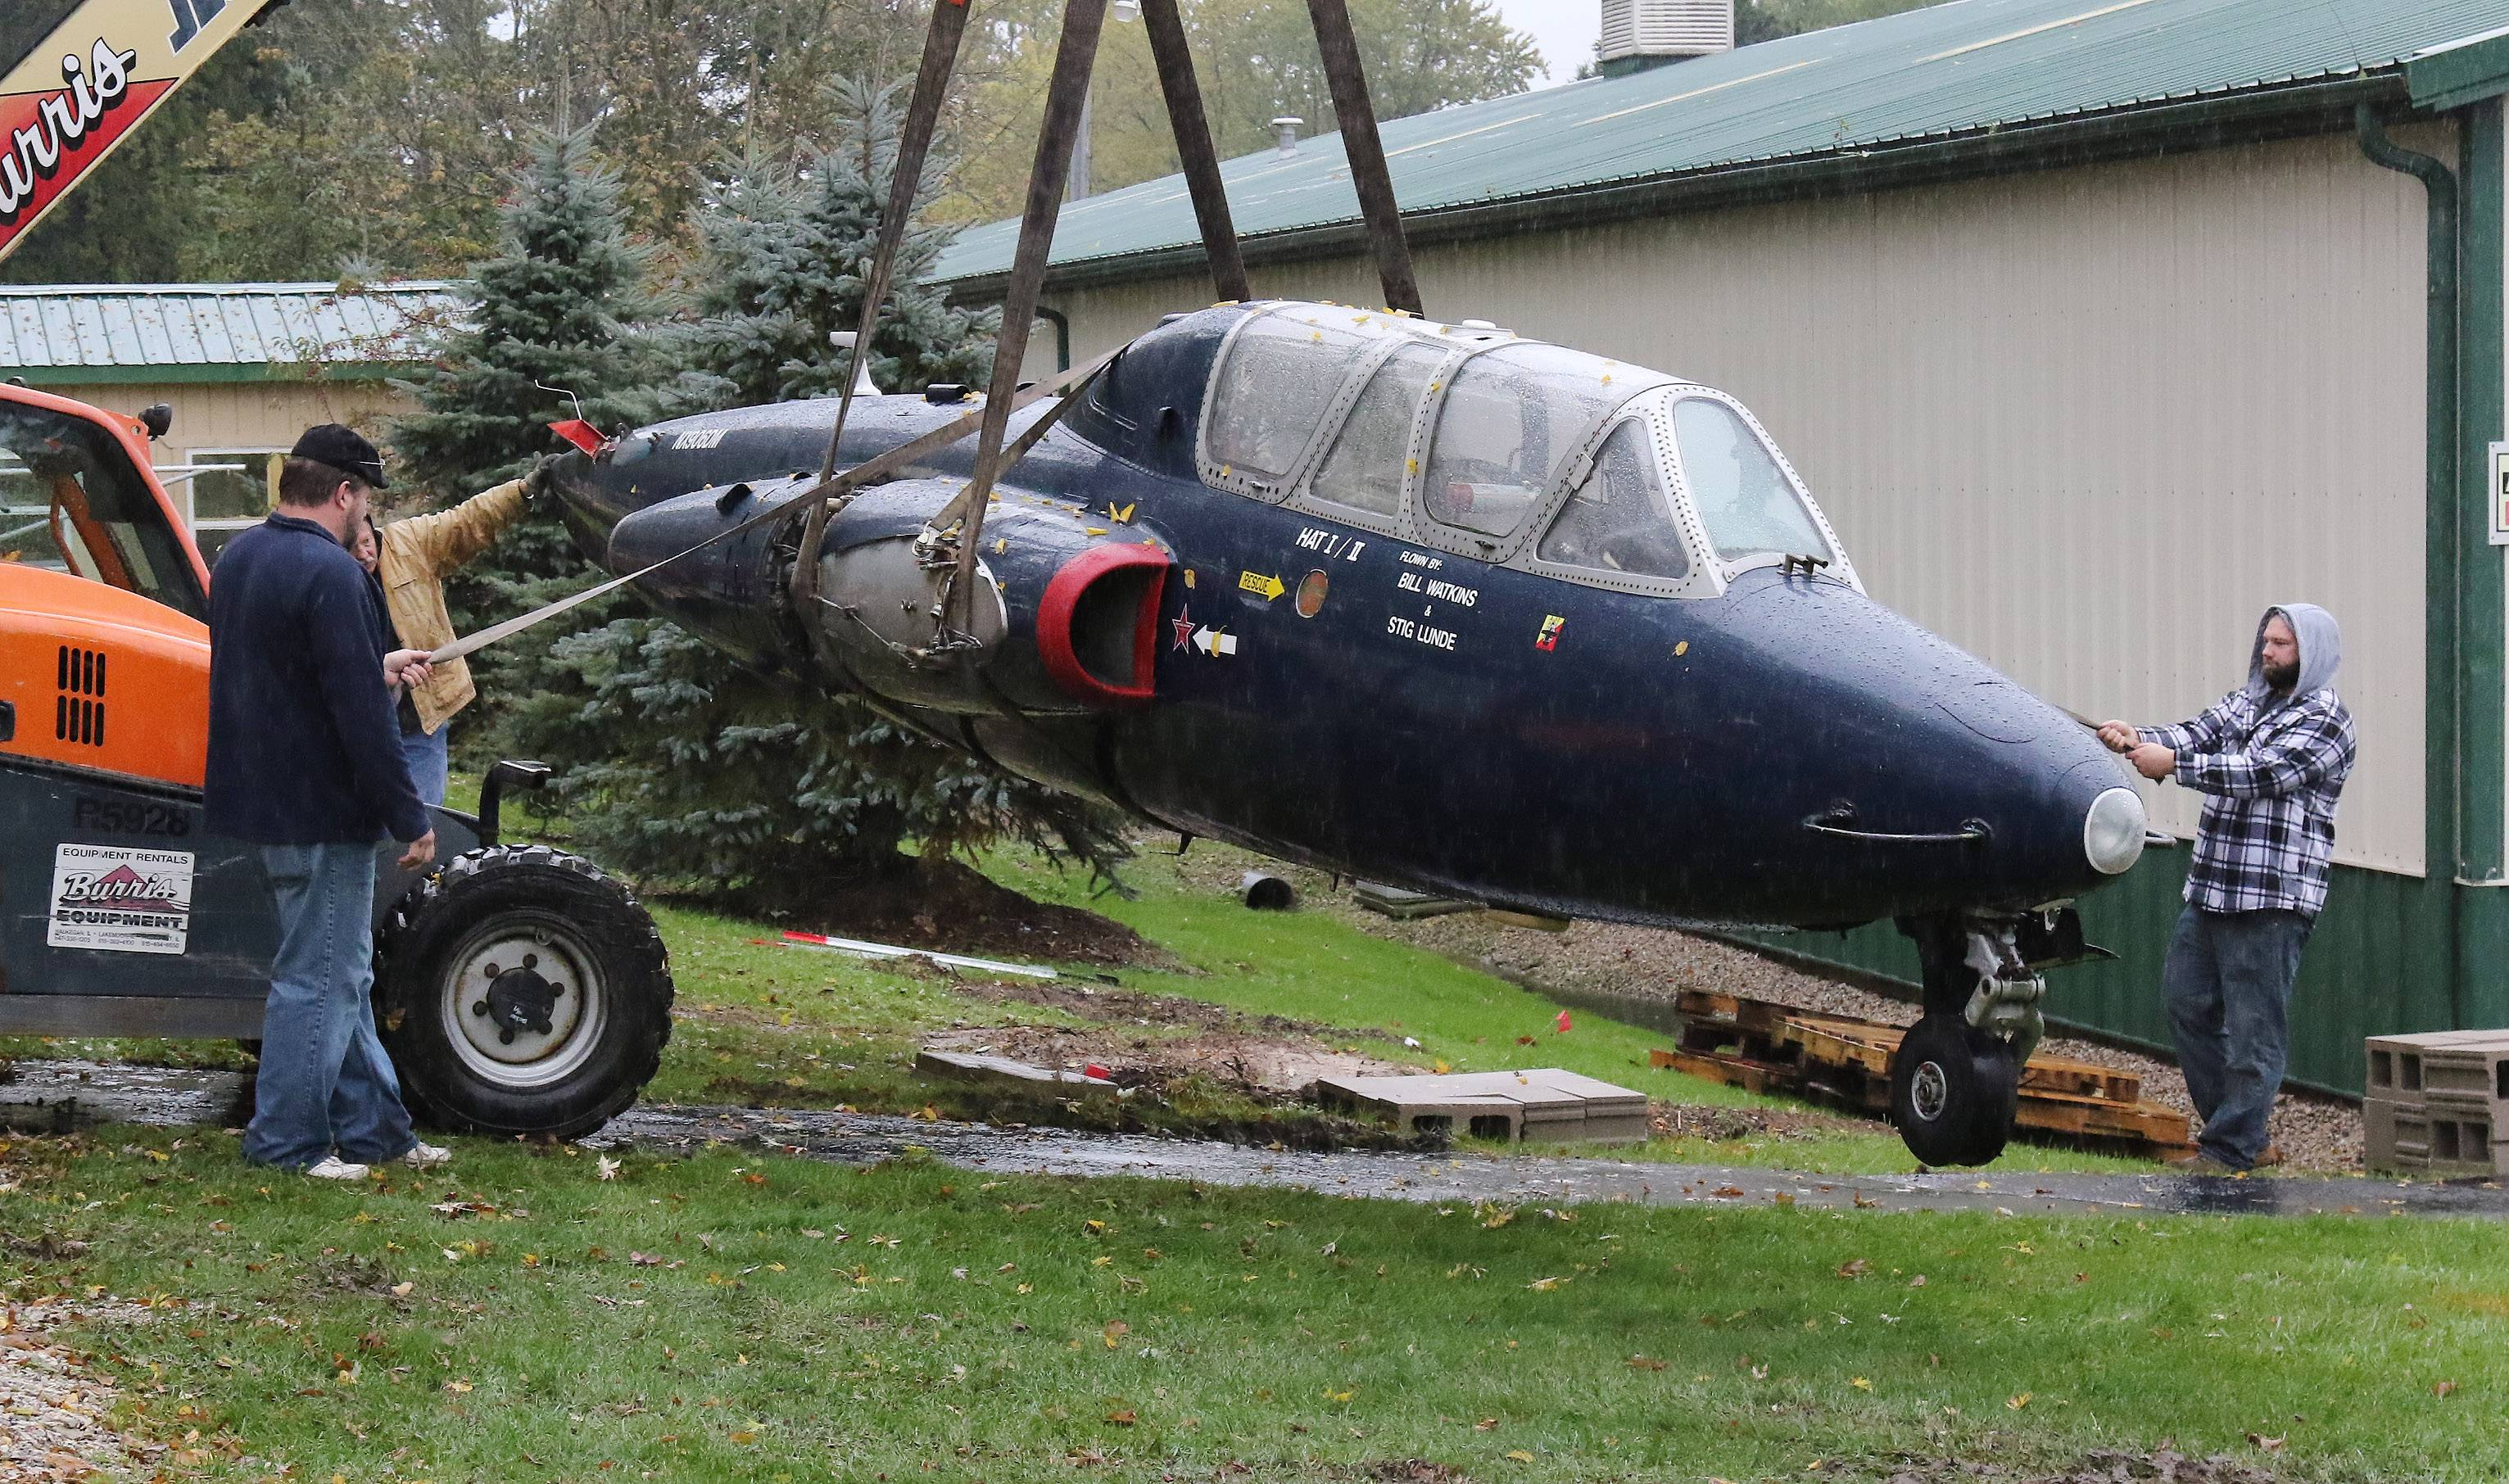 A work crew moves a French military trainer jet, the Fouga CM-170 Magister, in to place at the Volo Auto Museum on Wednesday. The jet was built in the 1950s and donated by a woman from Texas.